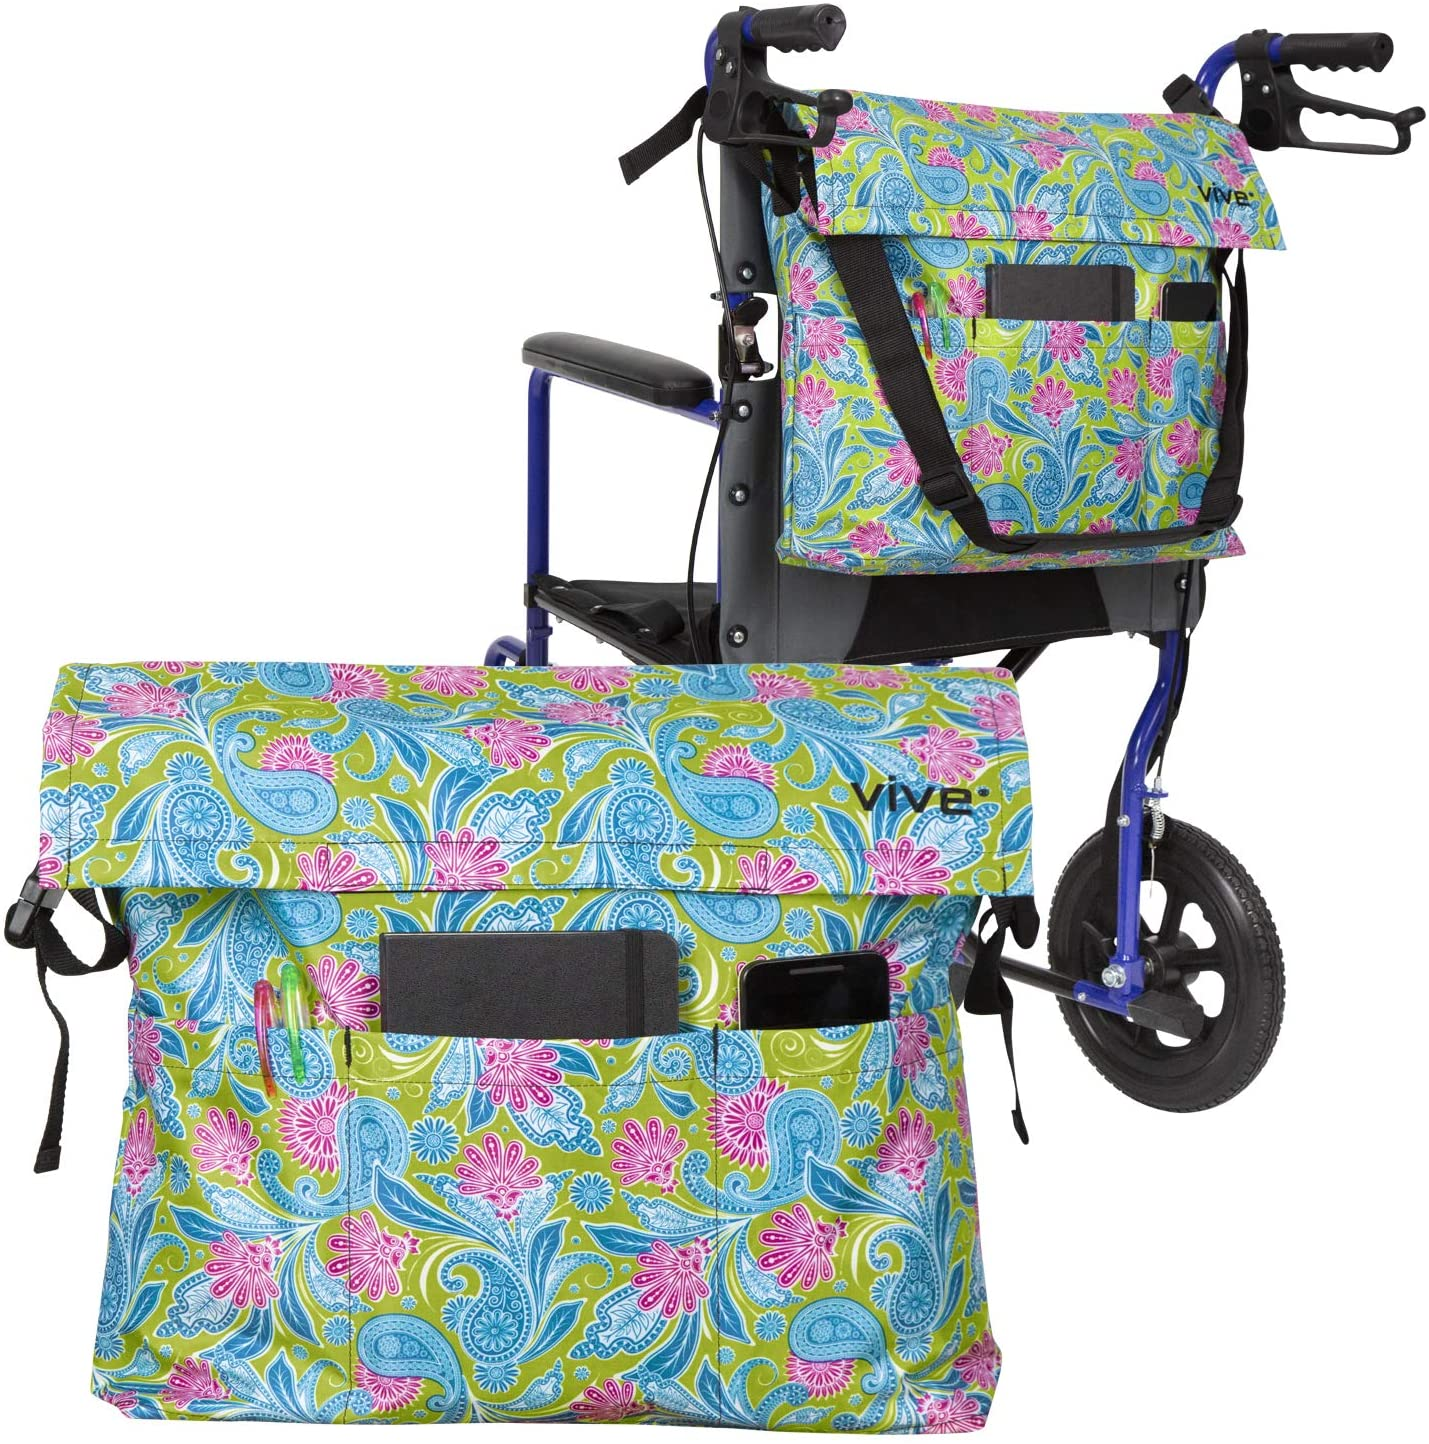 Vive Wheelchair Bag - Wheel Chair Storage Tote Accessory for Carrying Loose Items and Accessories - Travel Messenger Backpack for Men, Women, Handicap, Elderly - Accessible Pouch and Pockets: Health & Personal Care